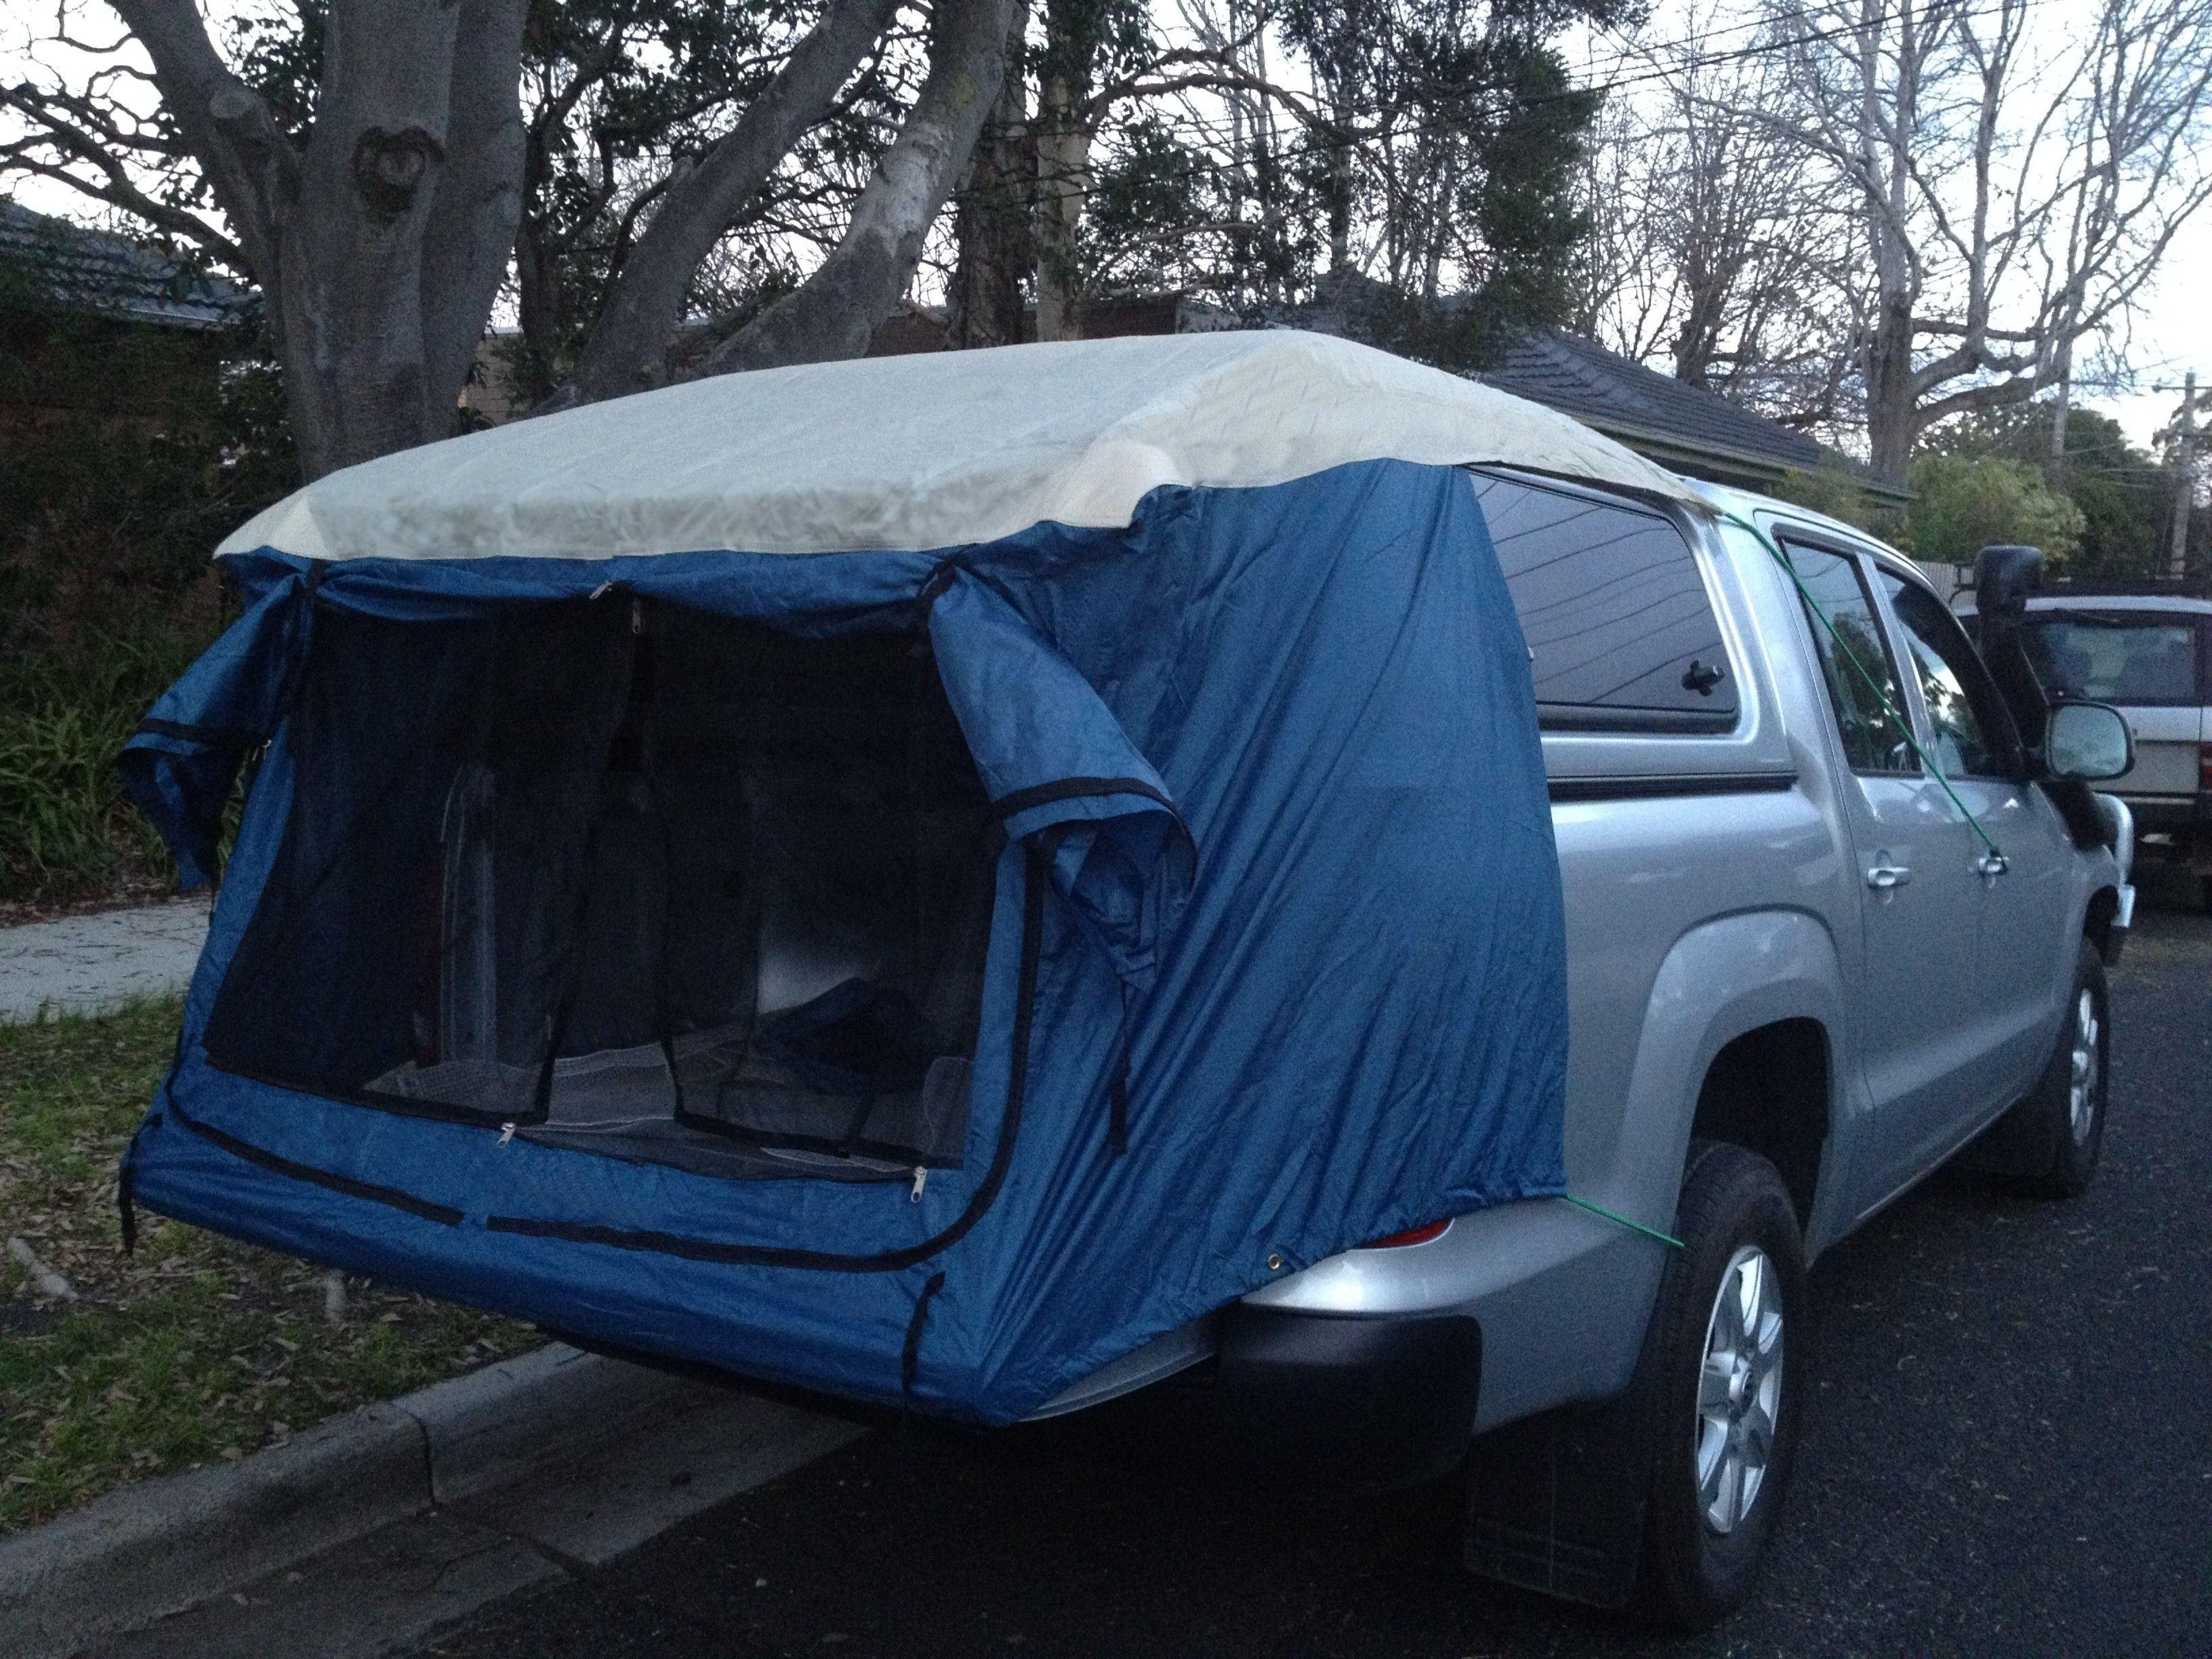 List of C&ing Tents For Vehicles - & List of Camping Tents For Vehicles - | Van Camping | Pinterest ...